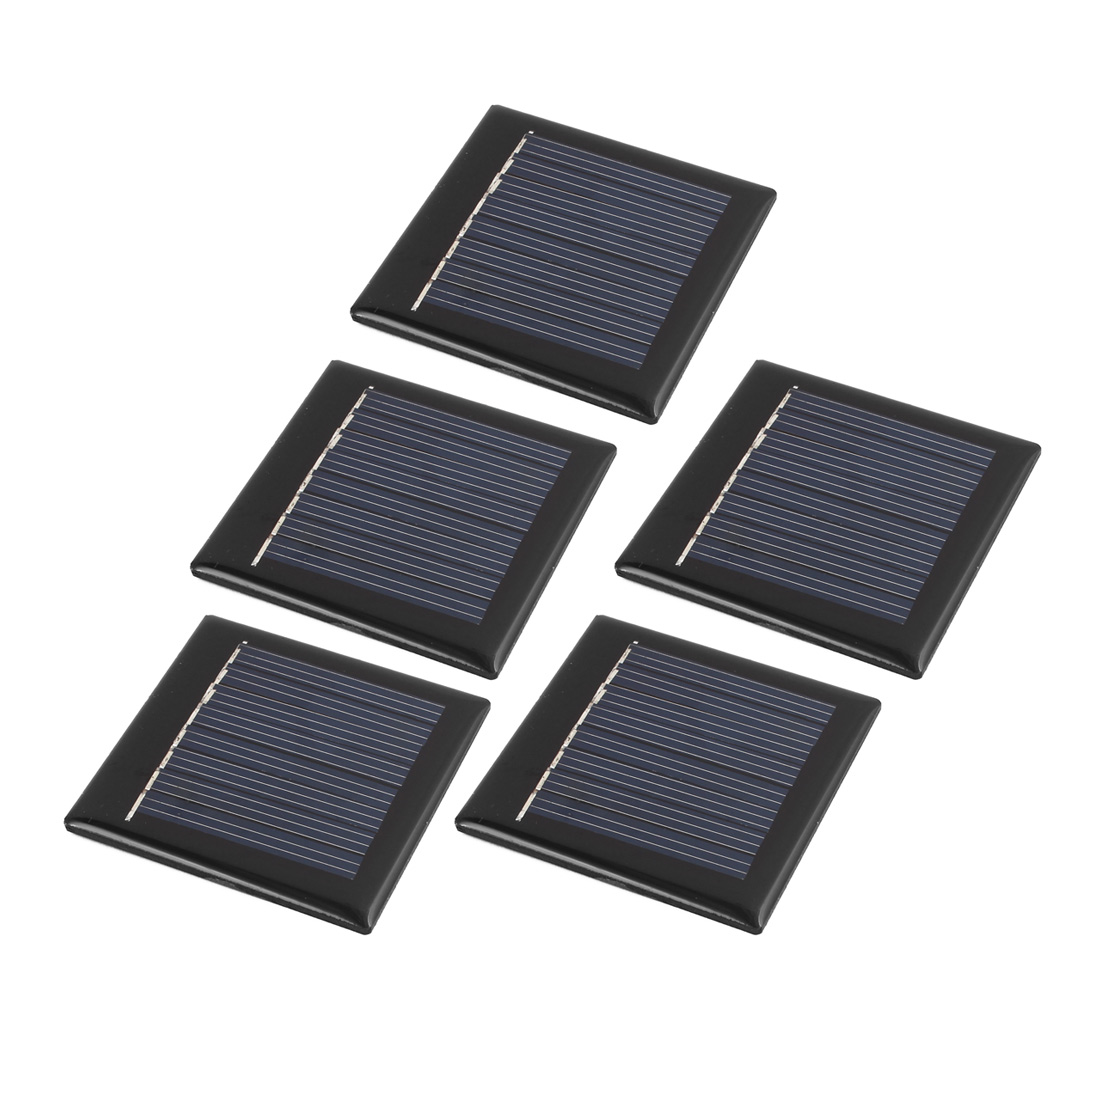 5Pcs 55mmx55mm 4 Volts 40mA Monocrystalline Solar Cell Panel Module